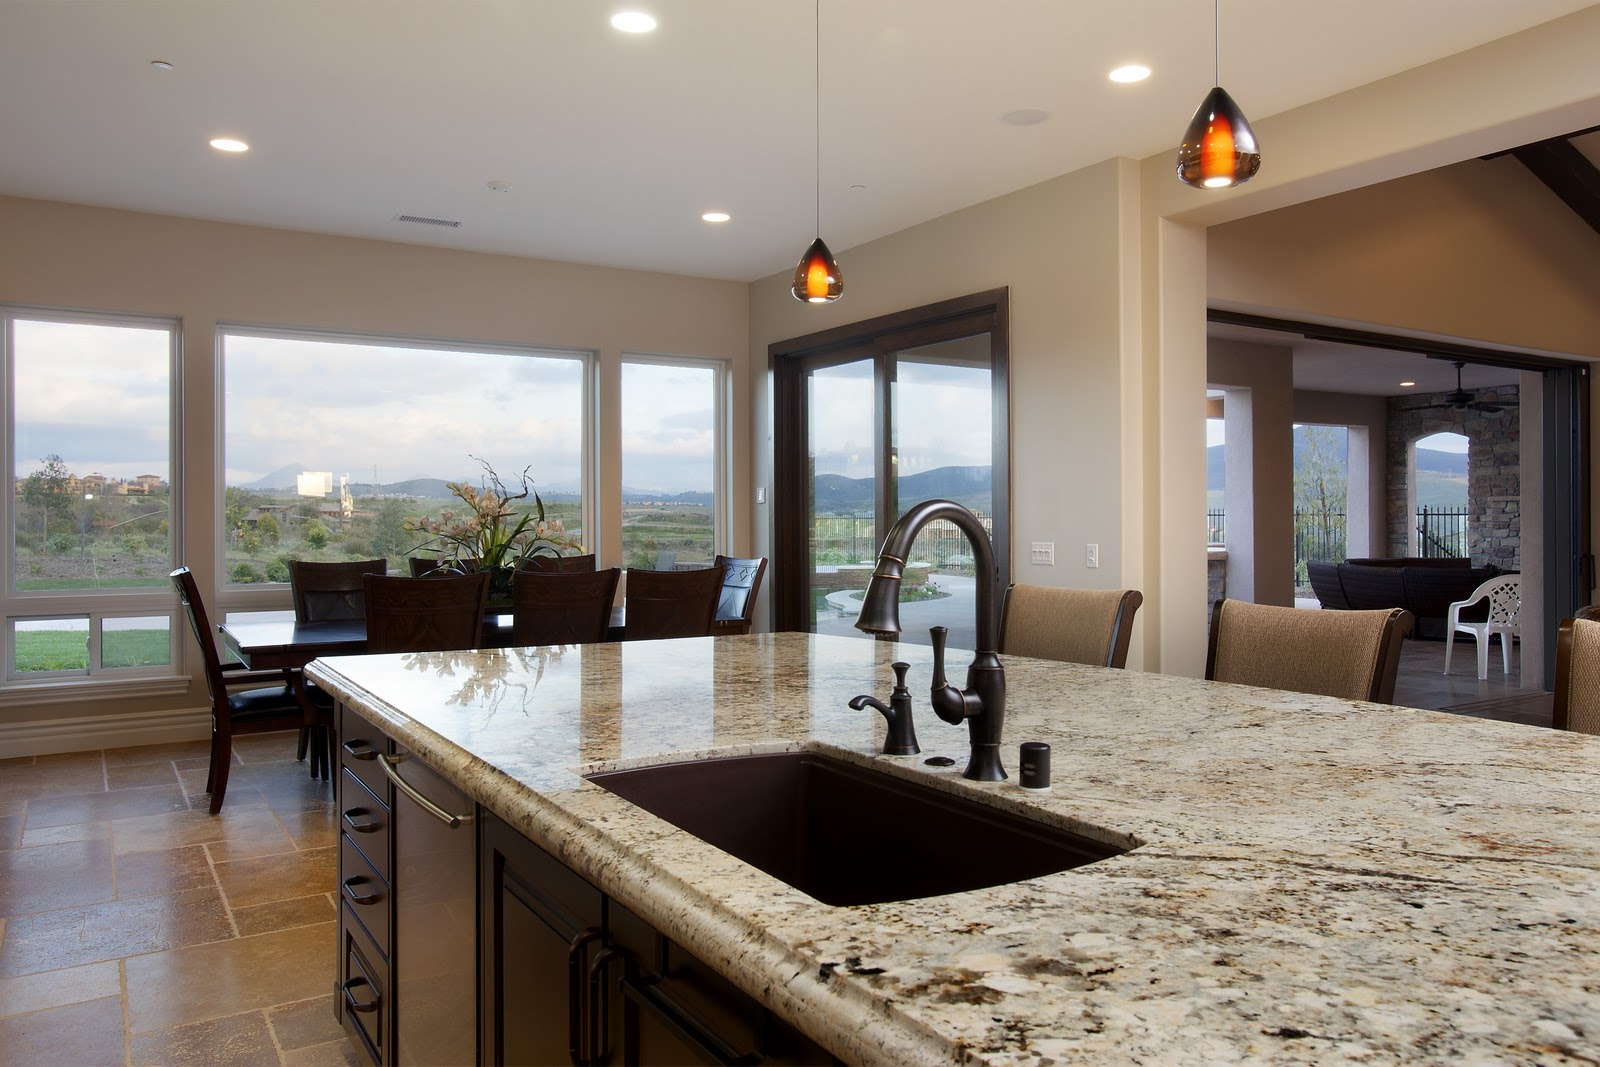 oil bronze kitchen faucet small plans mdd homes everything and the sink ideas now we will share about rubbed